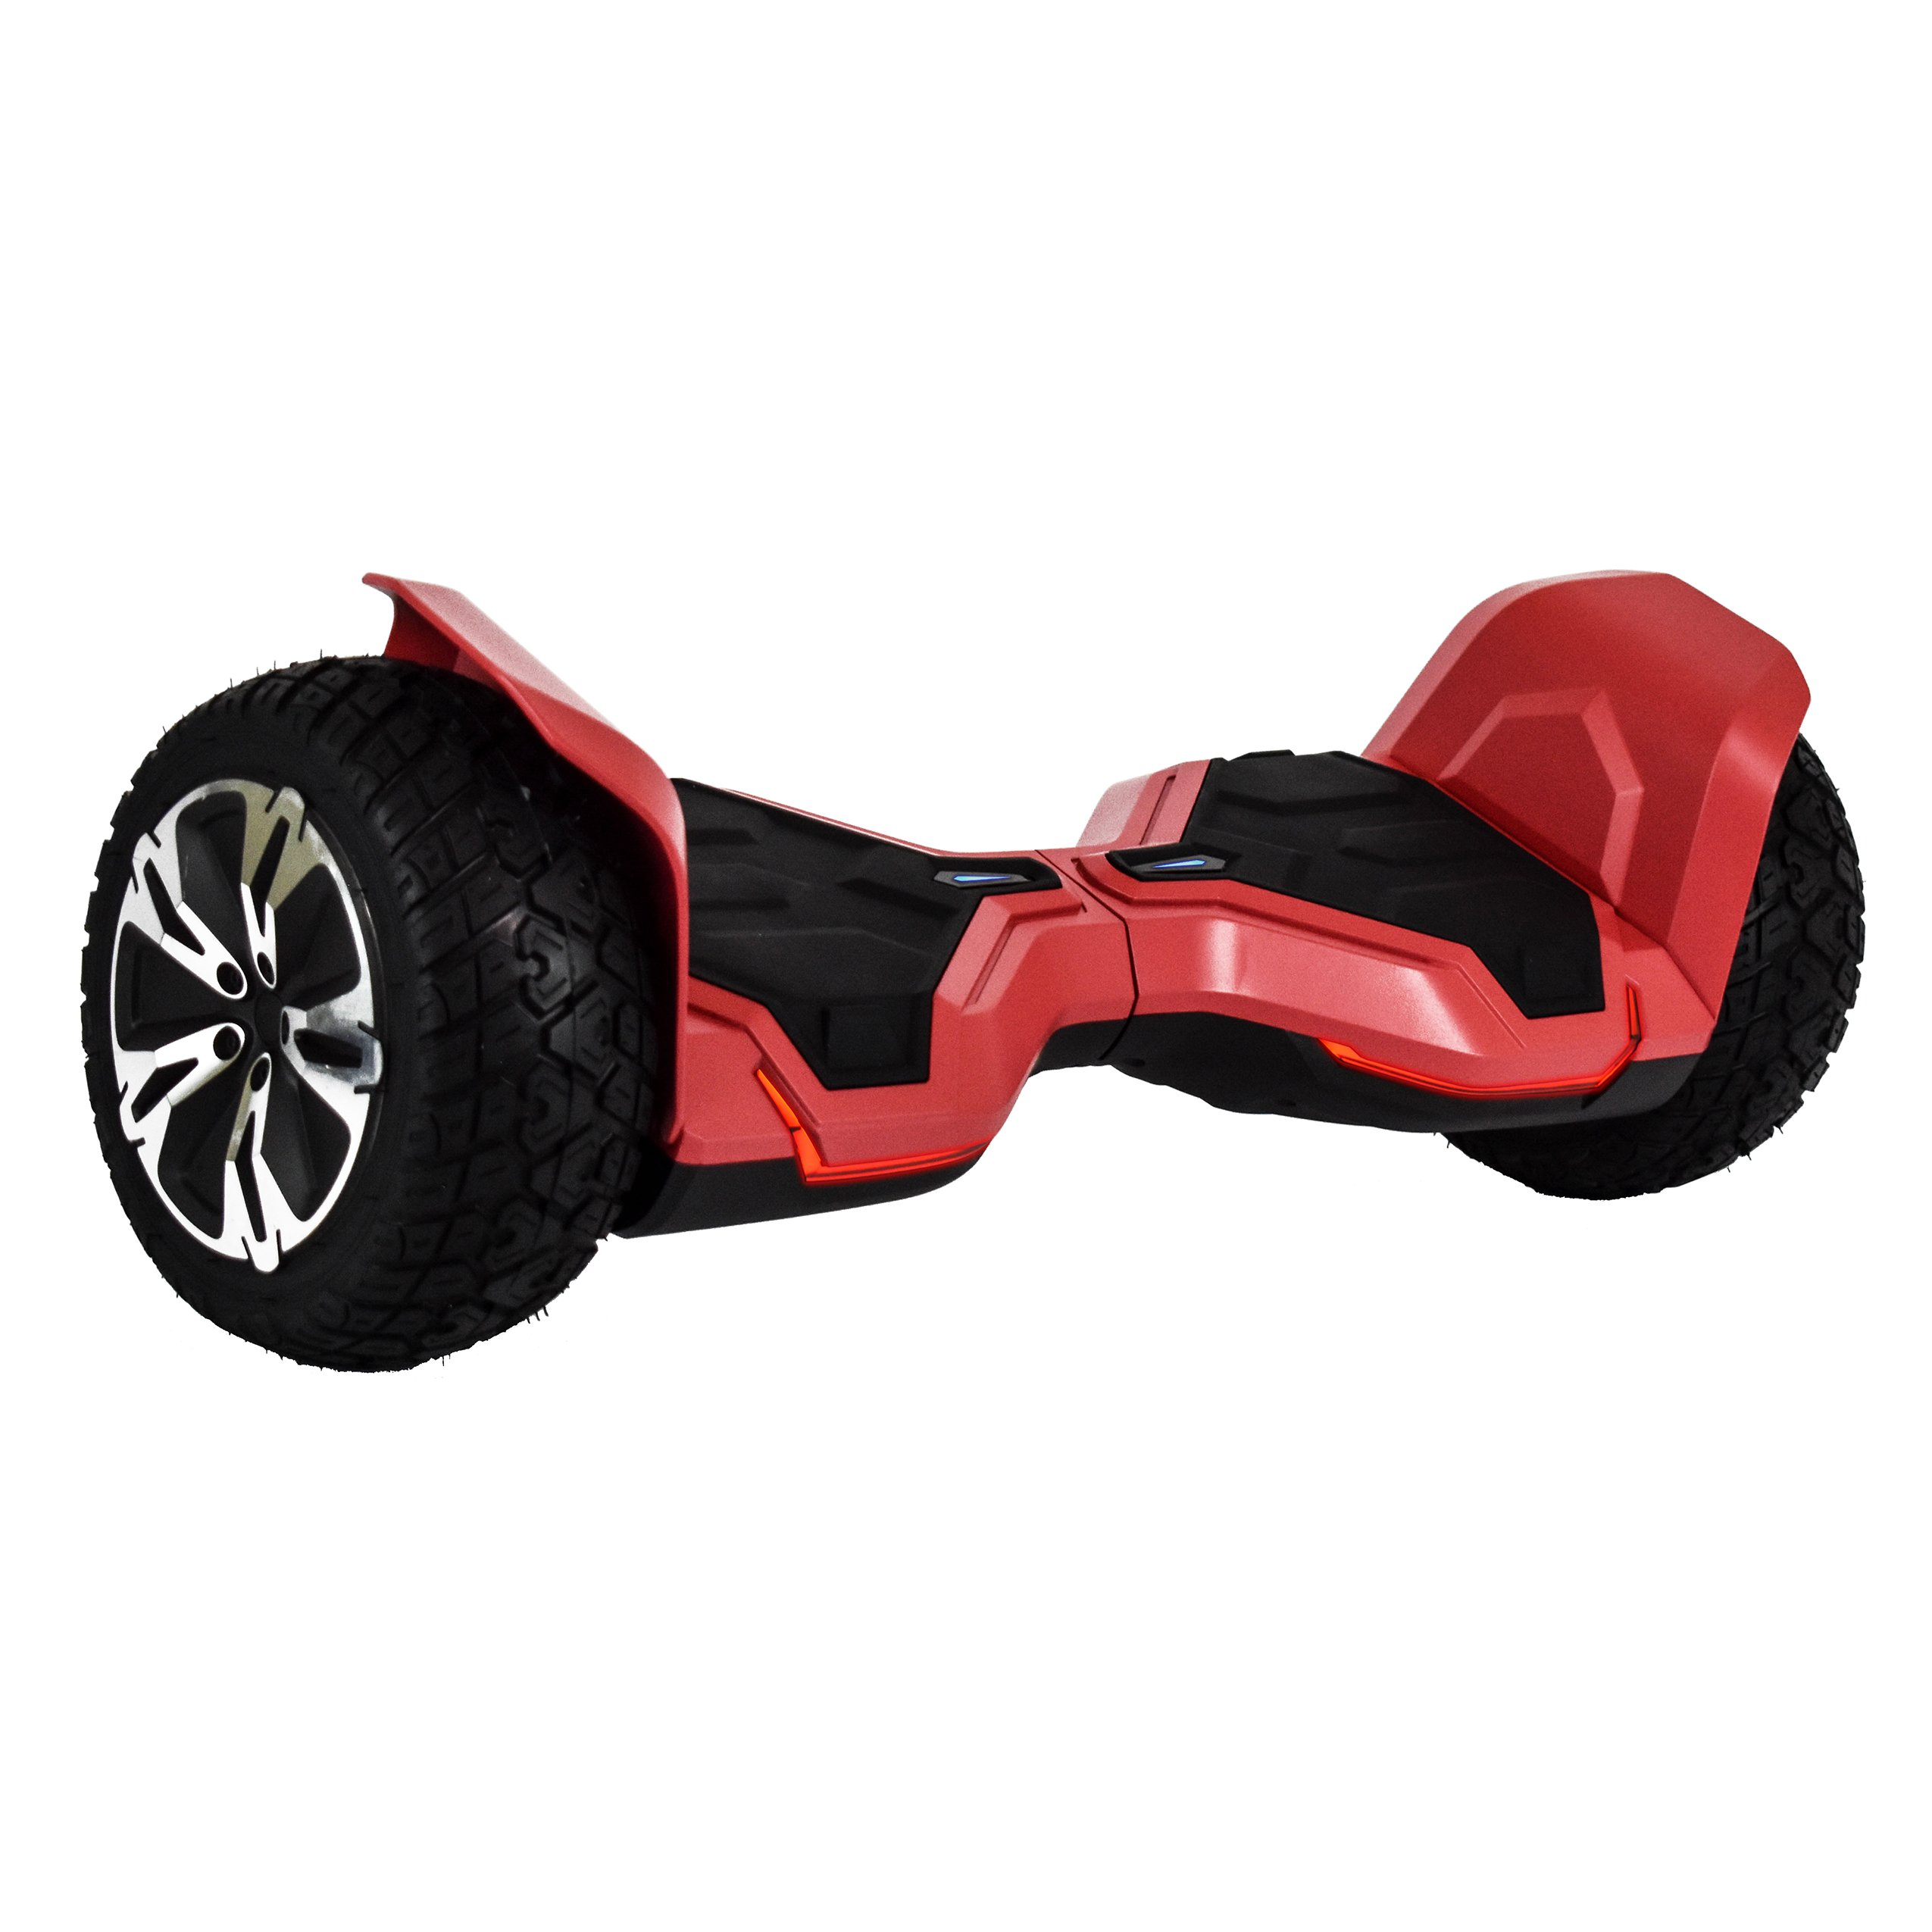 UL2272 8.5'' Hoverboard Off Road Smart Self balancing Scooter with Bluetooth Speaker